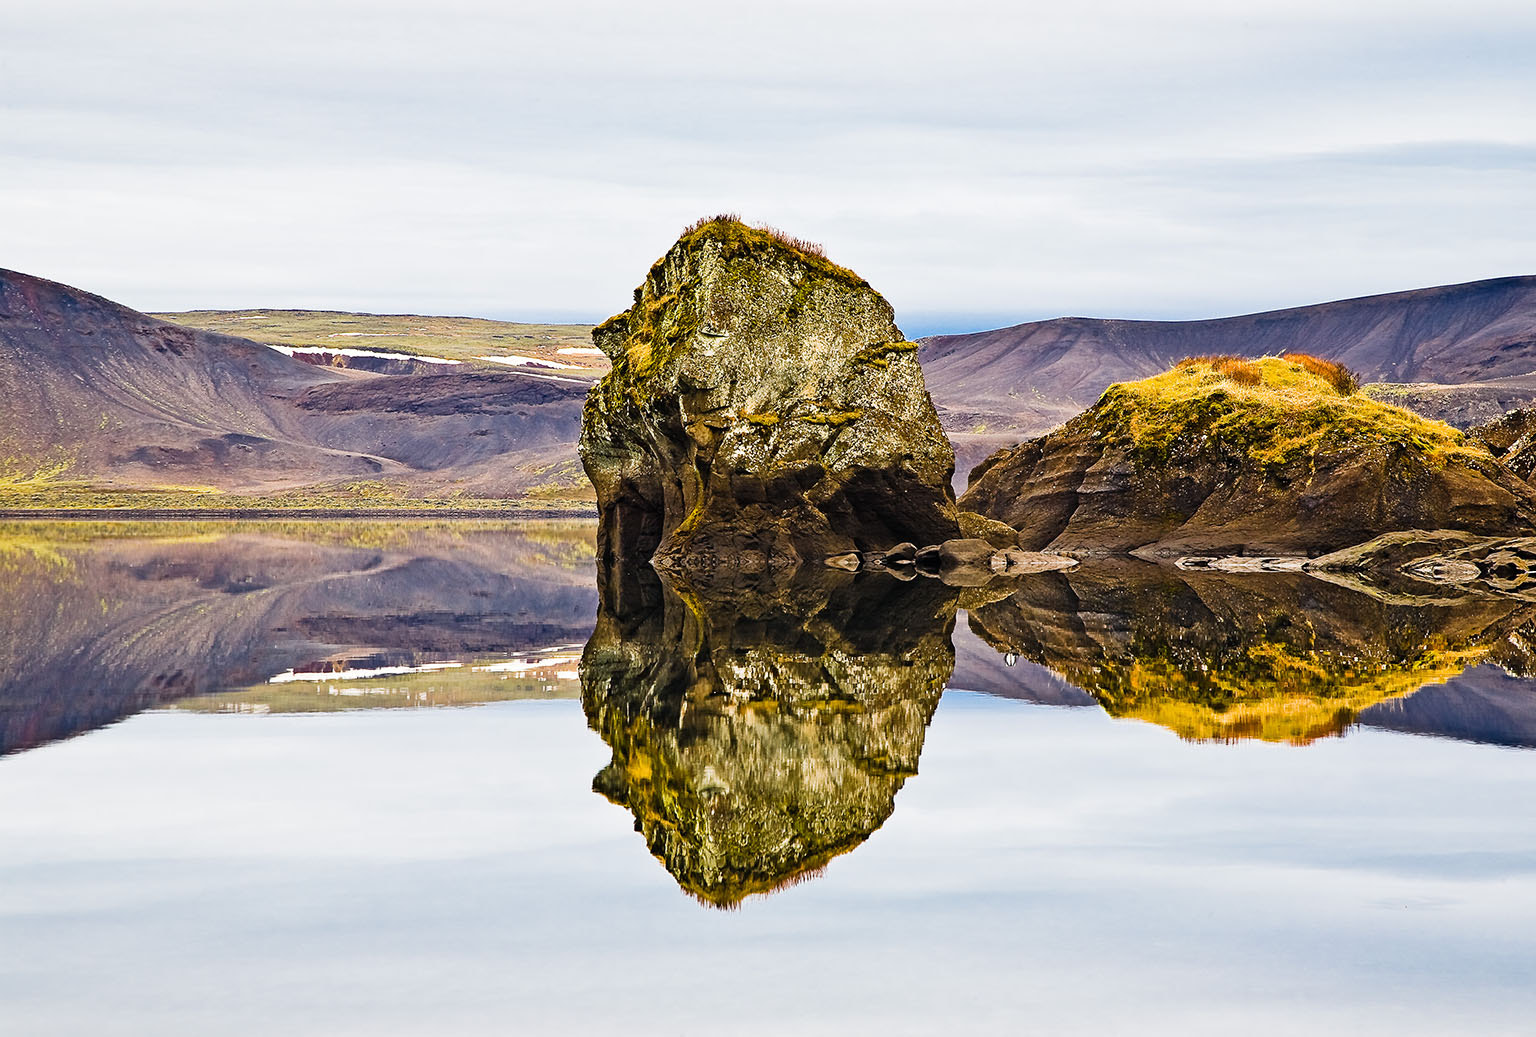 Photograph Autumn Reflection - Lake Kleifarvatn, Iceland by Páll Guðjónsson on 500px